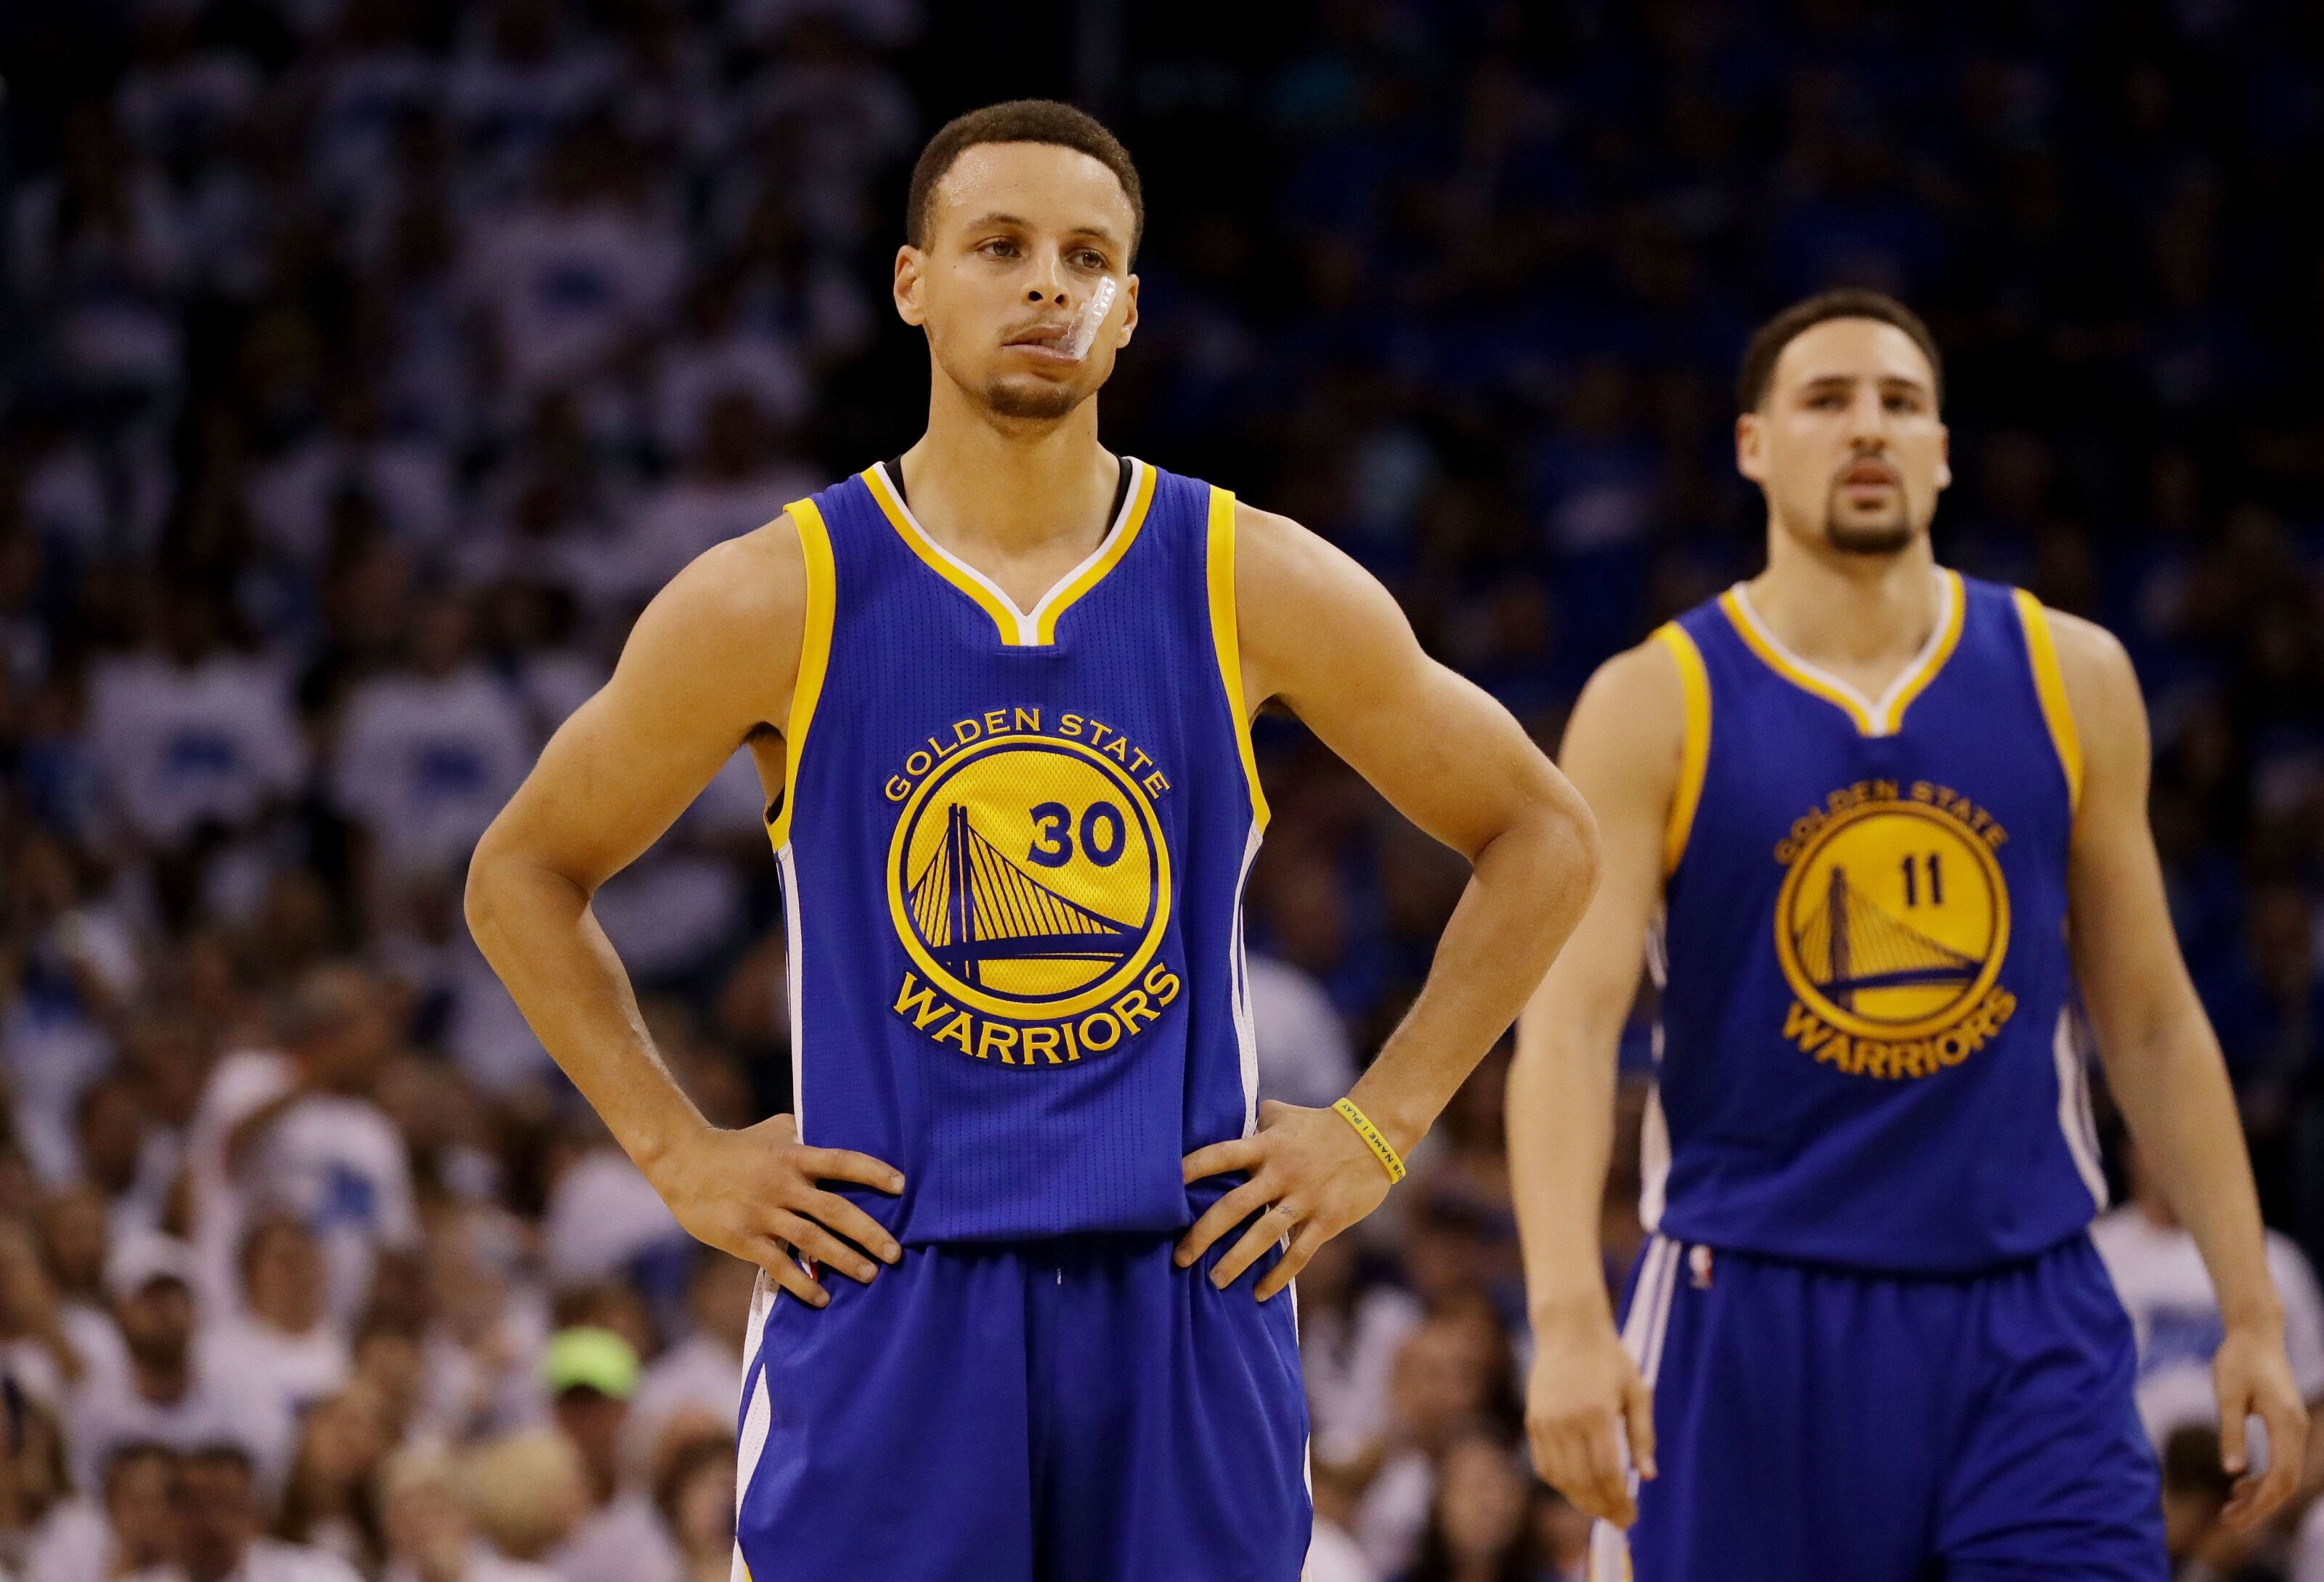 Golden State Warriors: Stephen Curry should be traded within the next 2 years